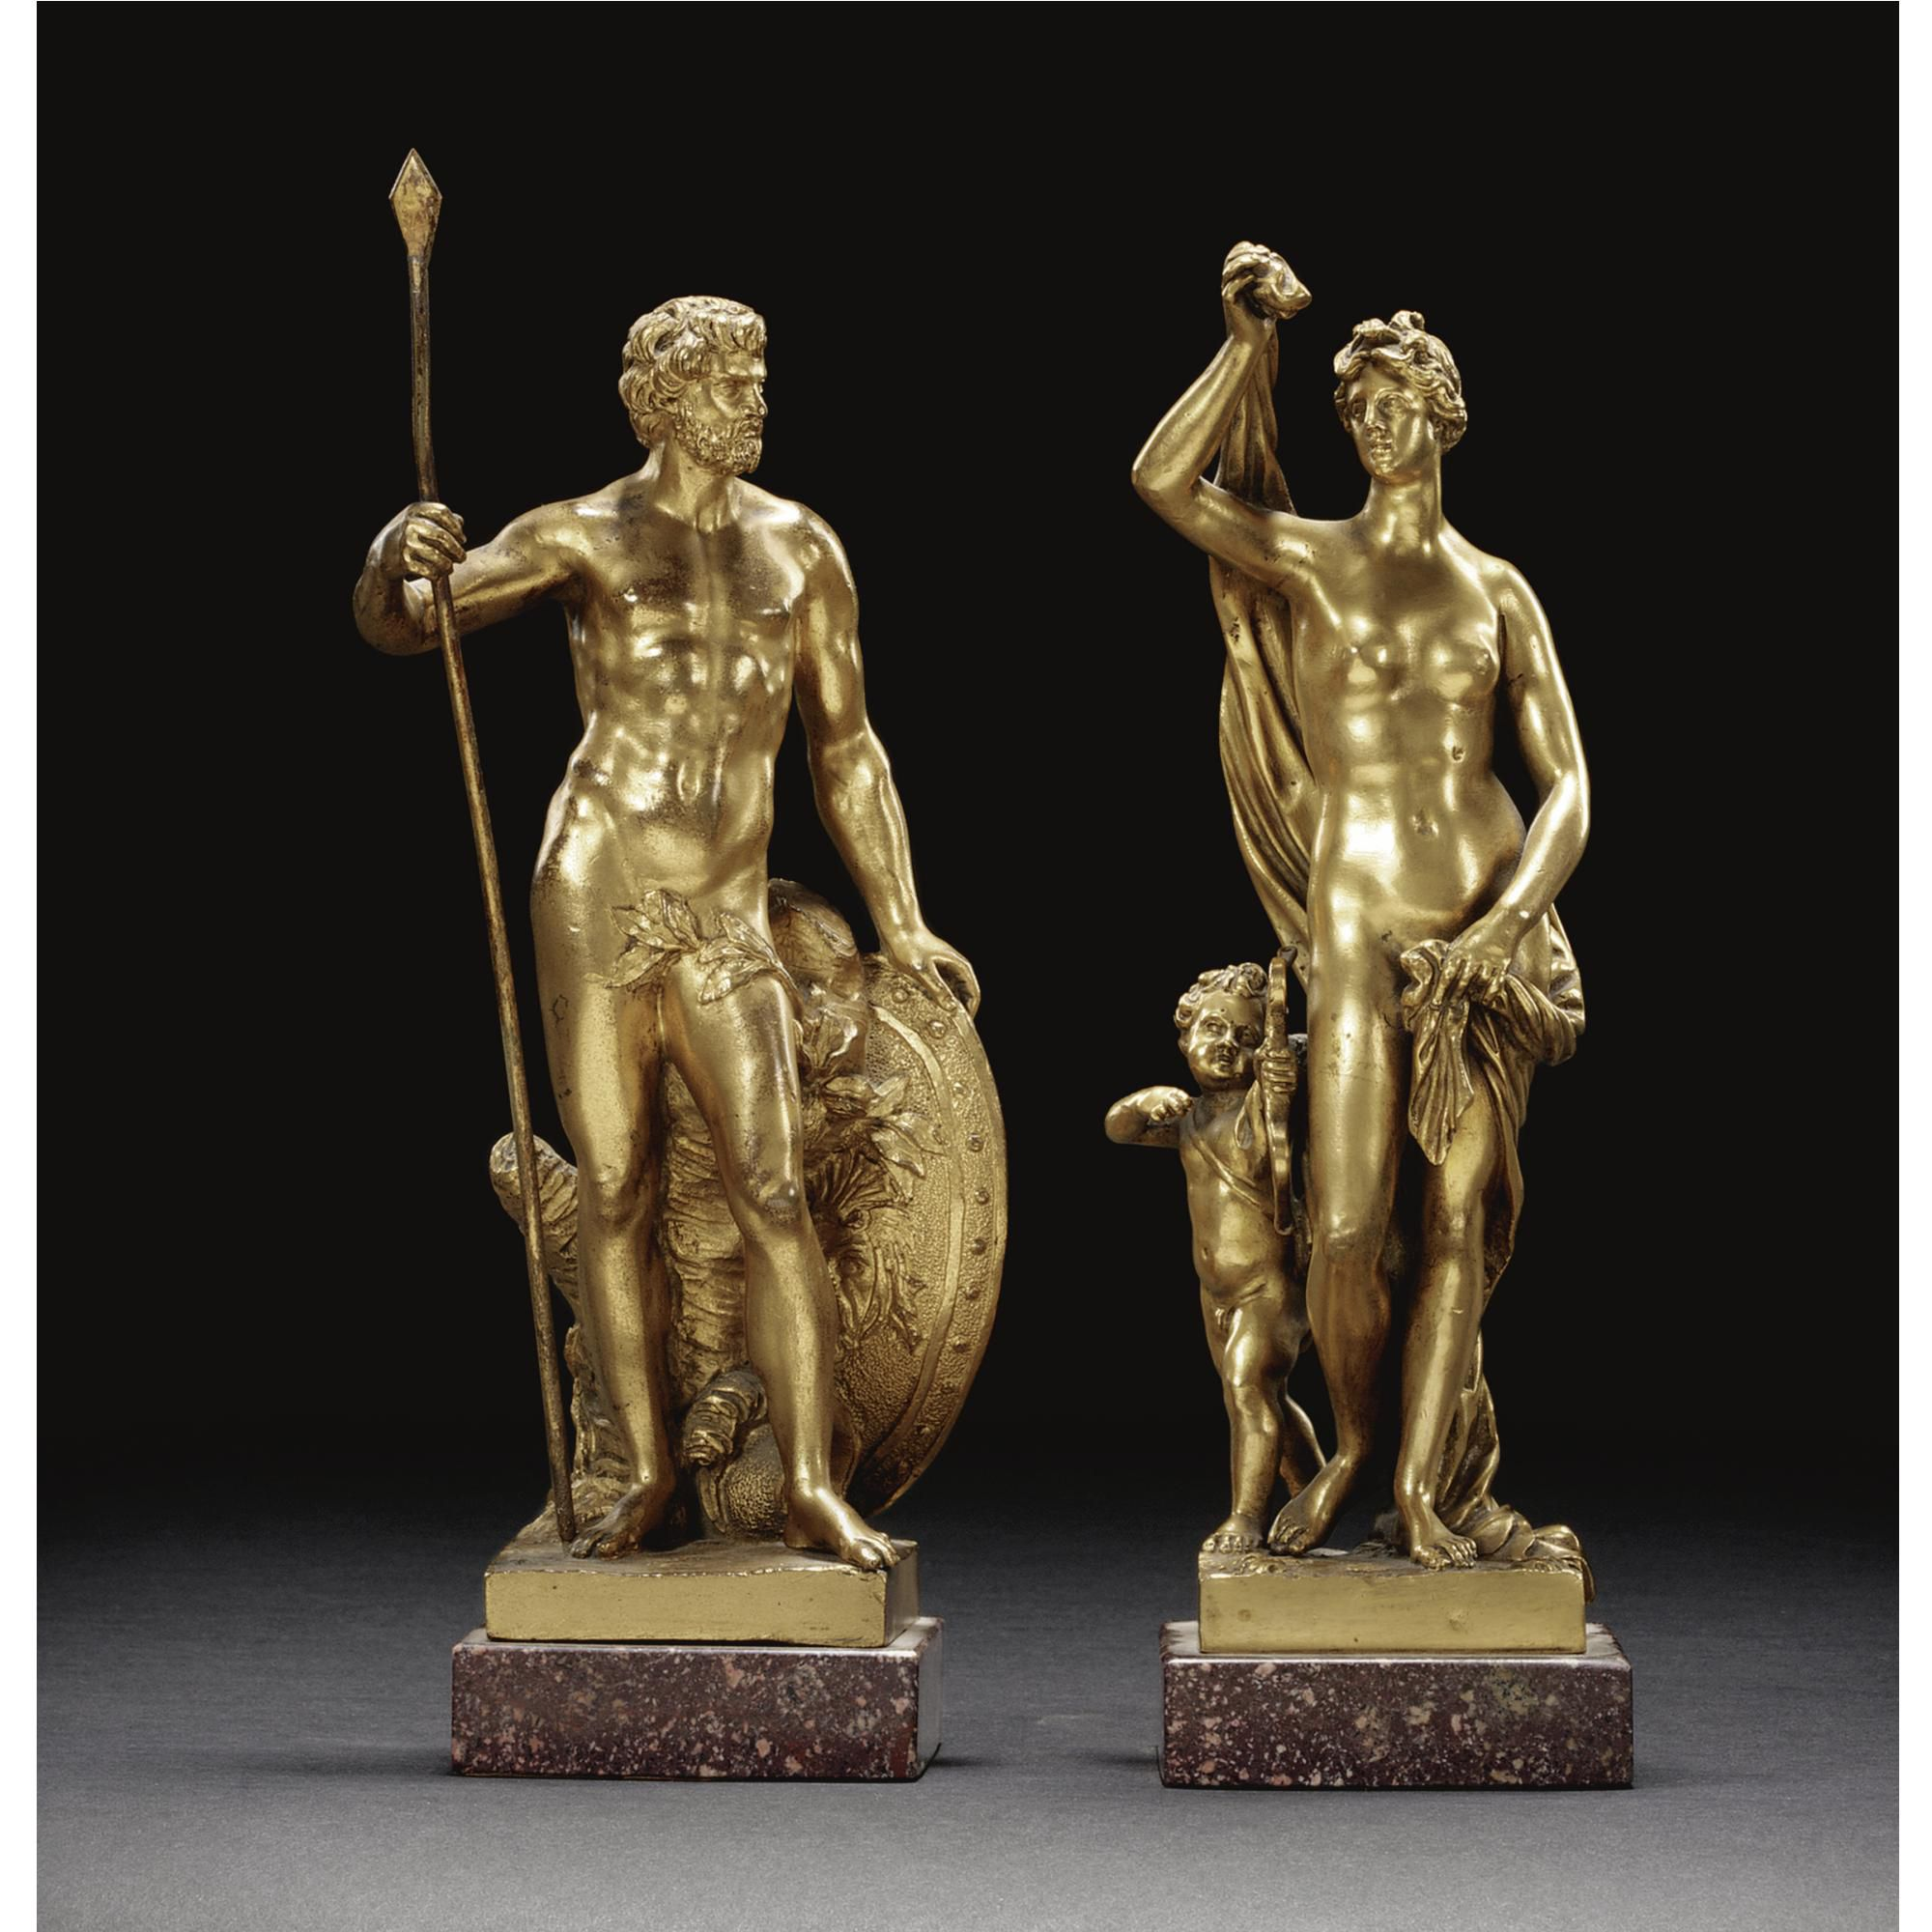 AFTER SEBASTIAN SLODTZ (1655-1726)  FRENCH, LATE 18TH CENTURY  A PAIR OF GILT FIGURES OF MARS AND VENUS